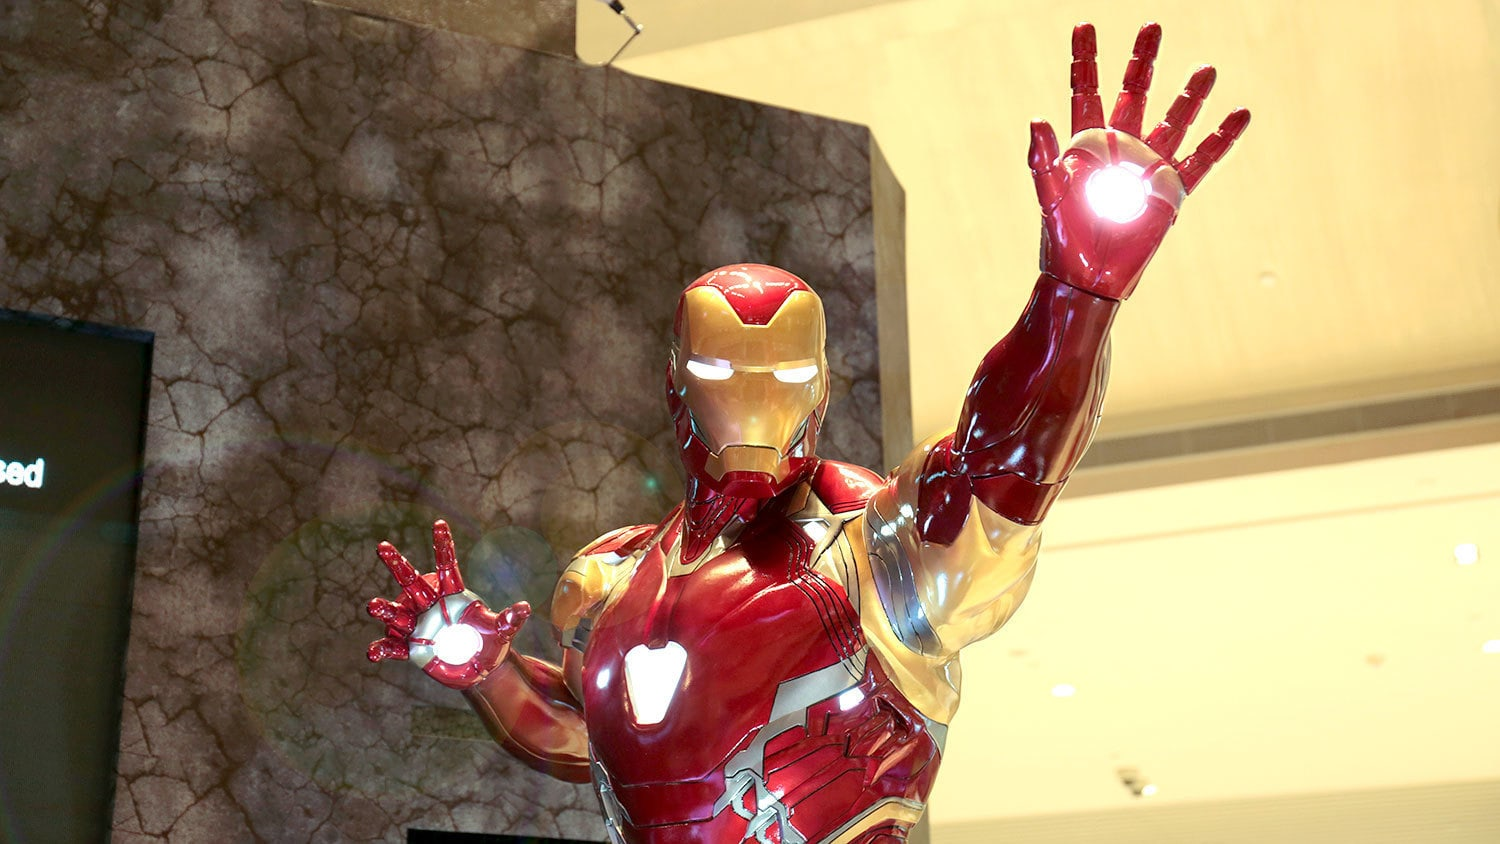 What You Need To Know About The Marvel Studios' Avengers